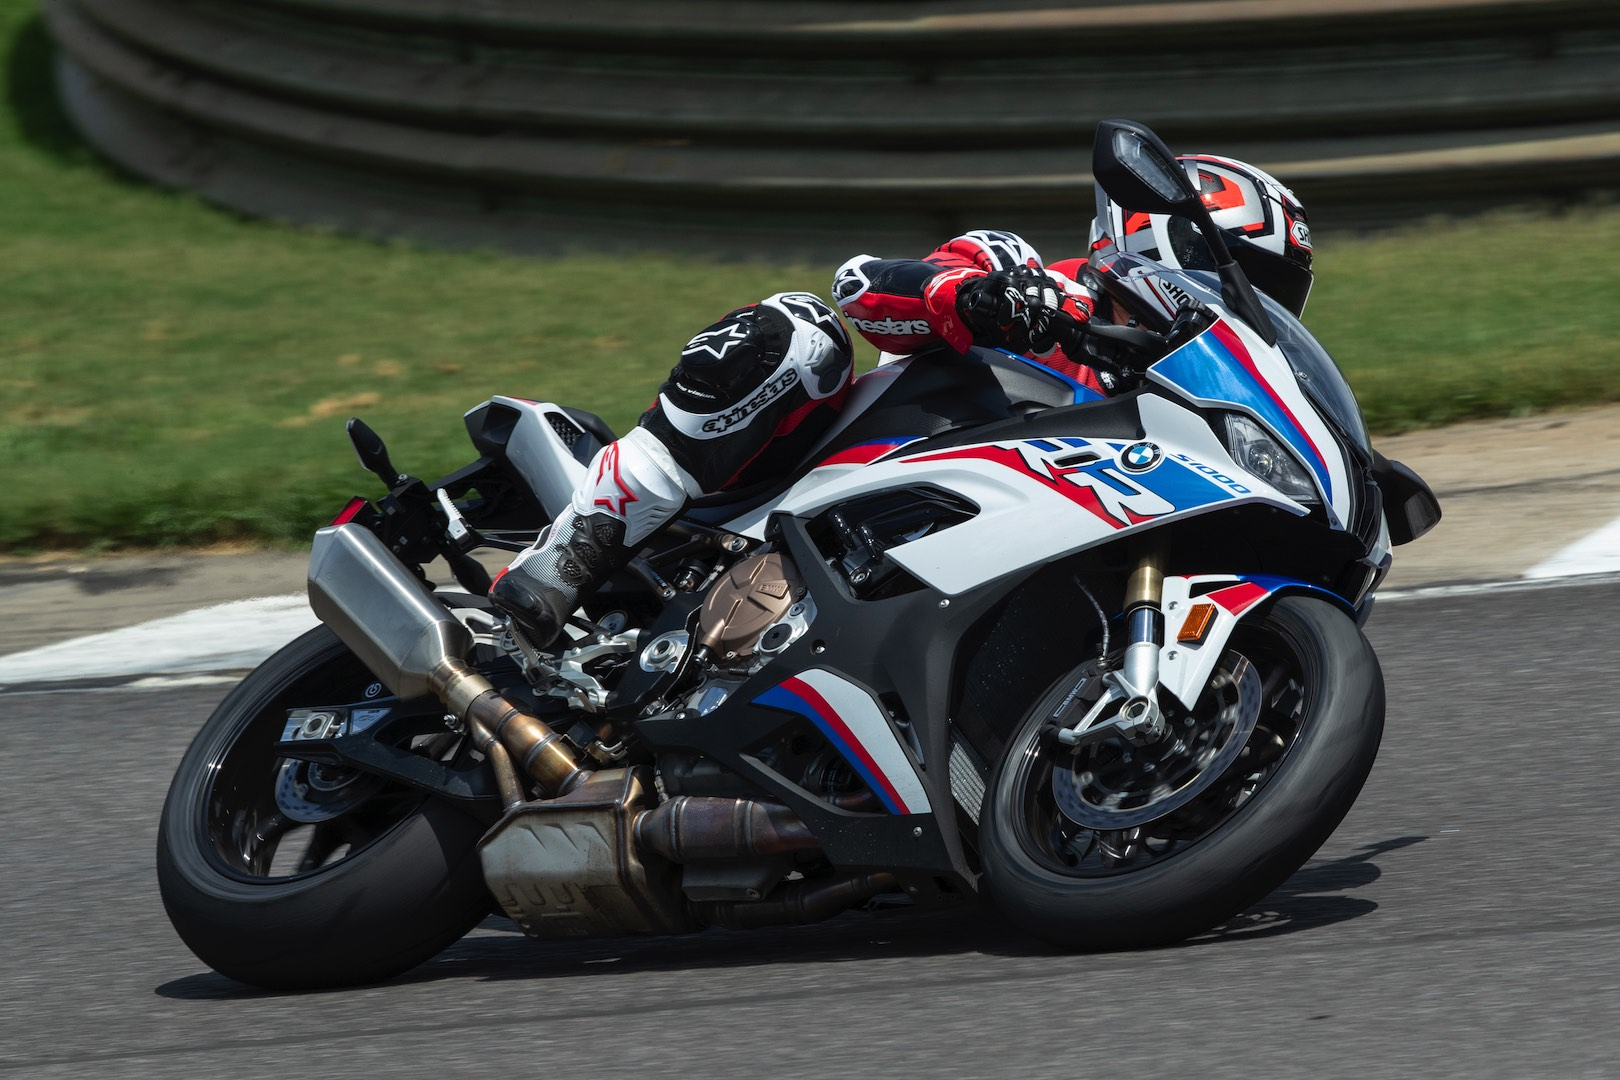 BMW S 1000 RR vs other superbikes